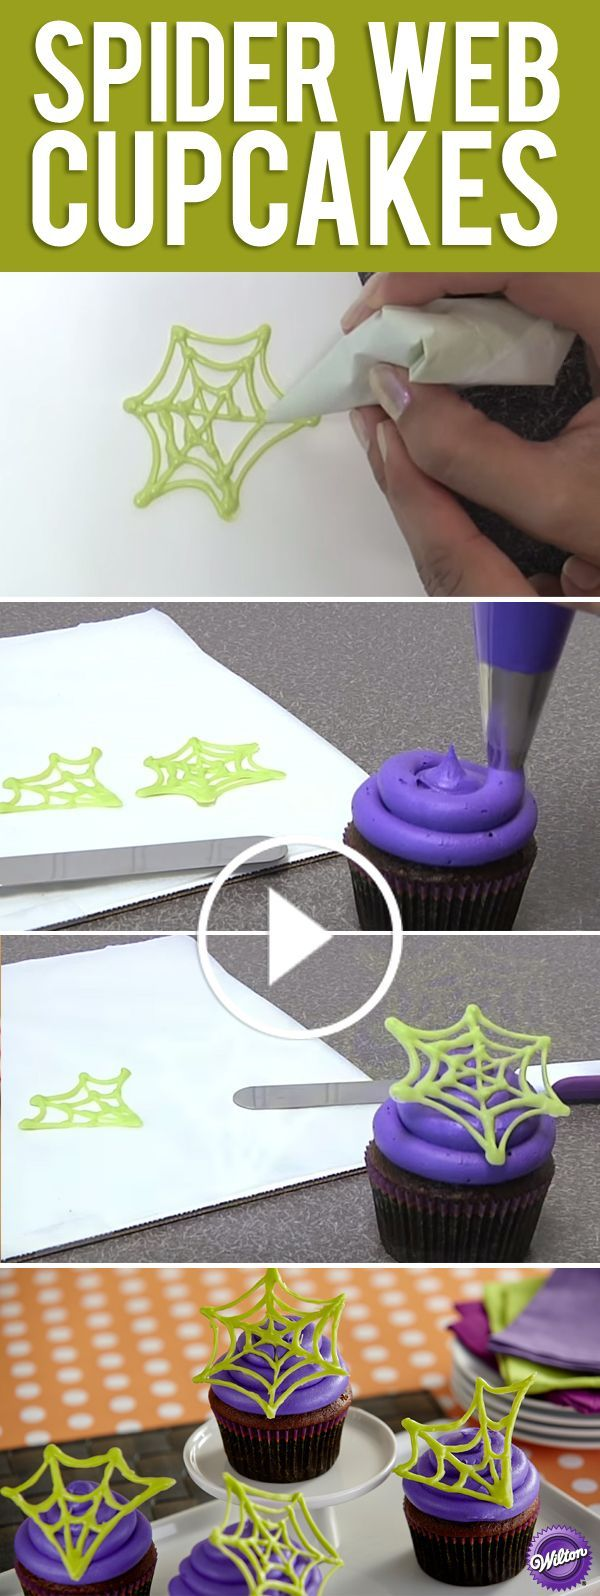 Make candy spider web cupcake decorations for Halloween. Watch our easy Halloween cupcakes tutorial. Subscribe to Wilton on YouTube for more ideas and inspiration!